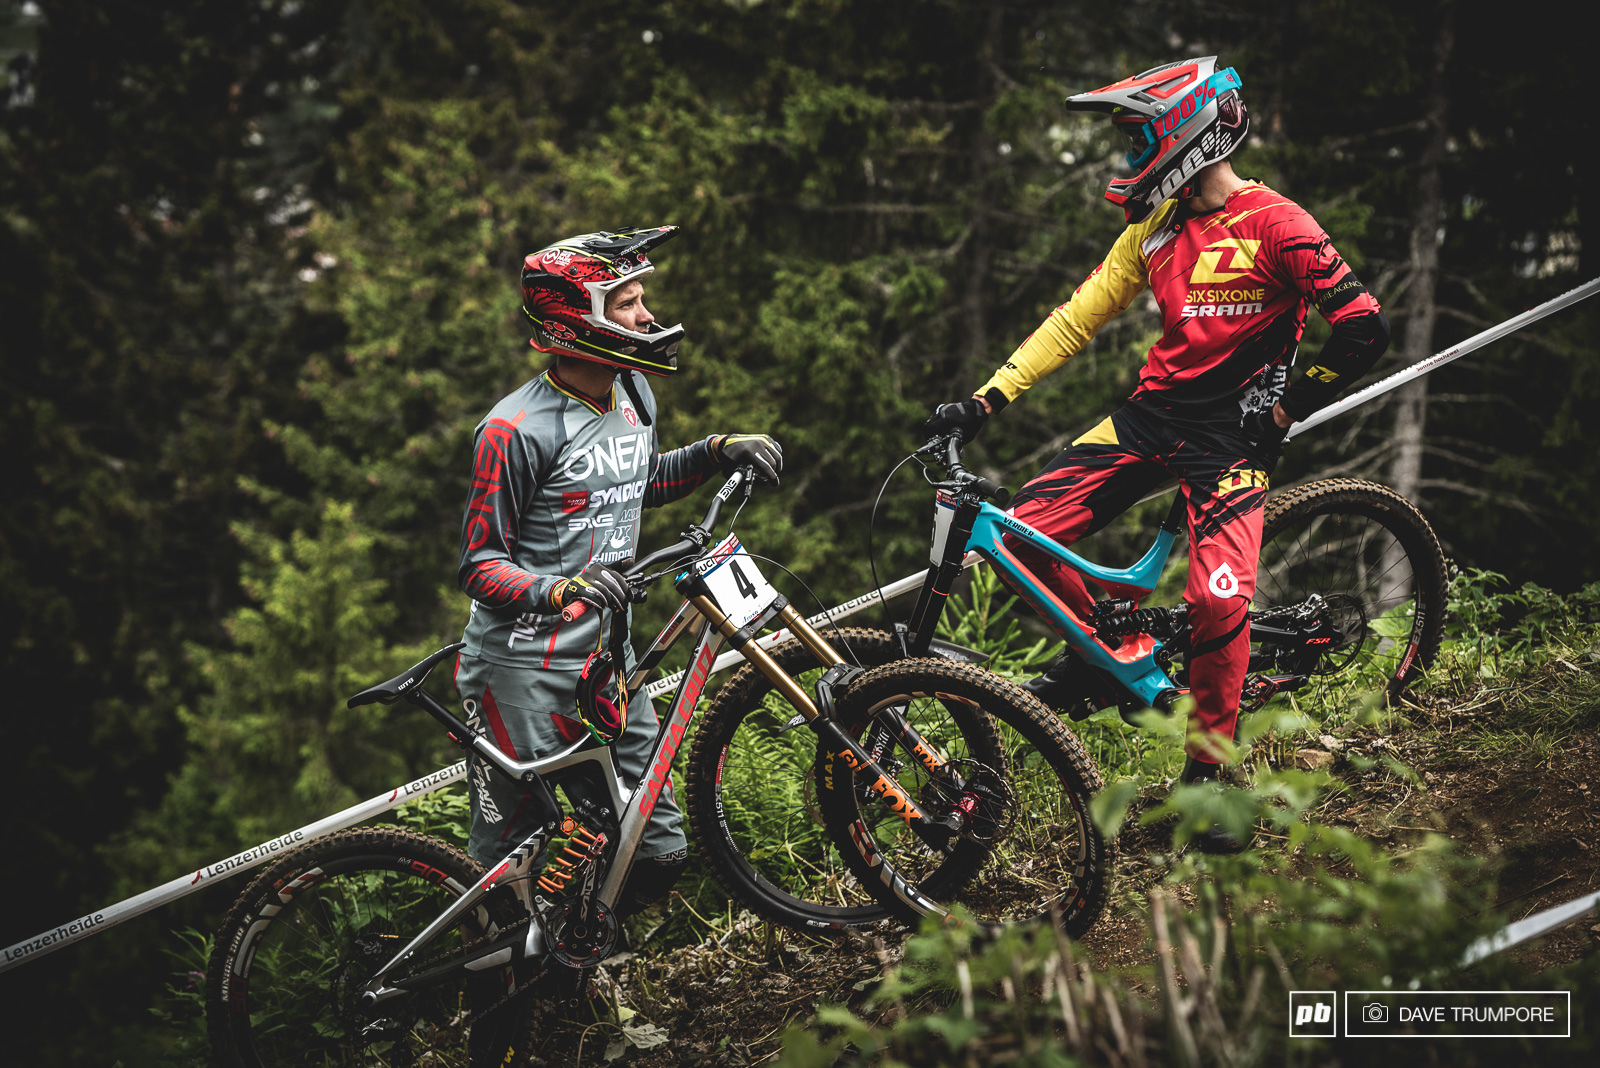 Greg Minnaar and Loris Vergier chat about lines at the close of practice.